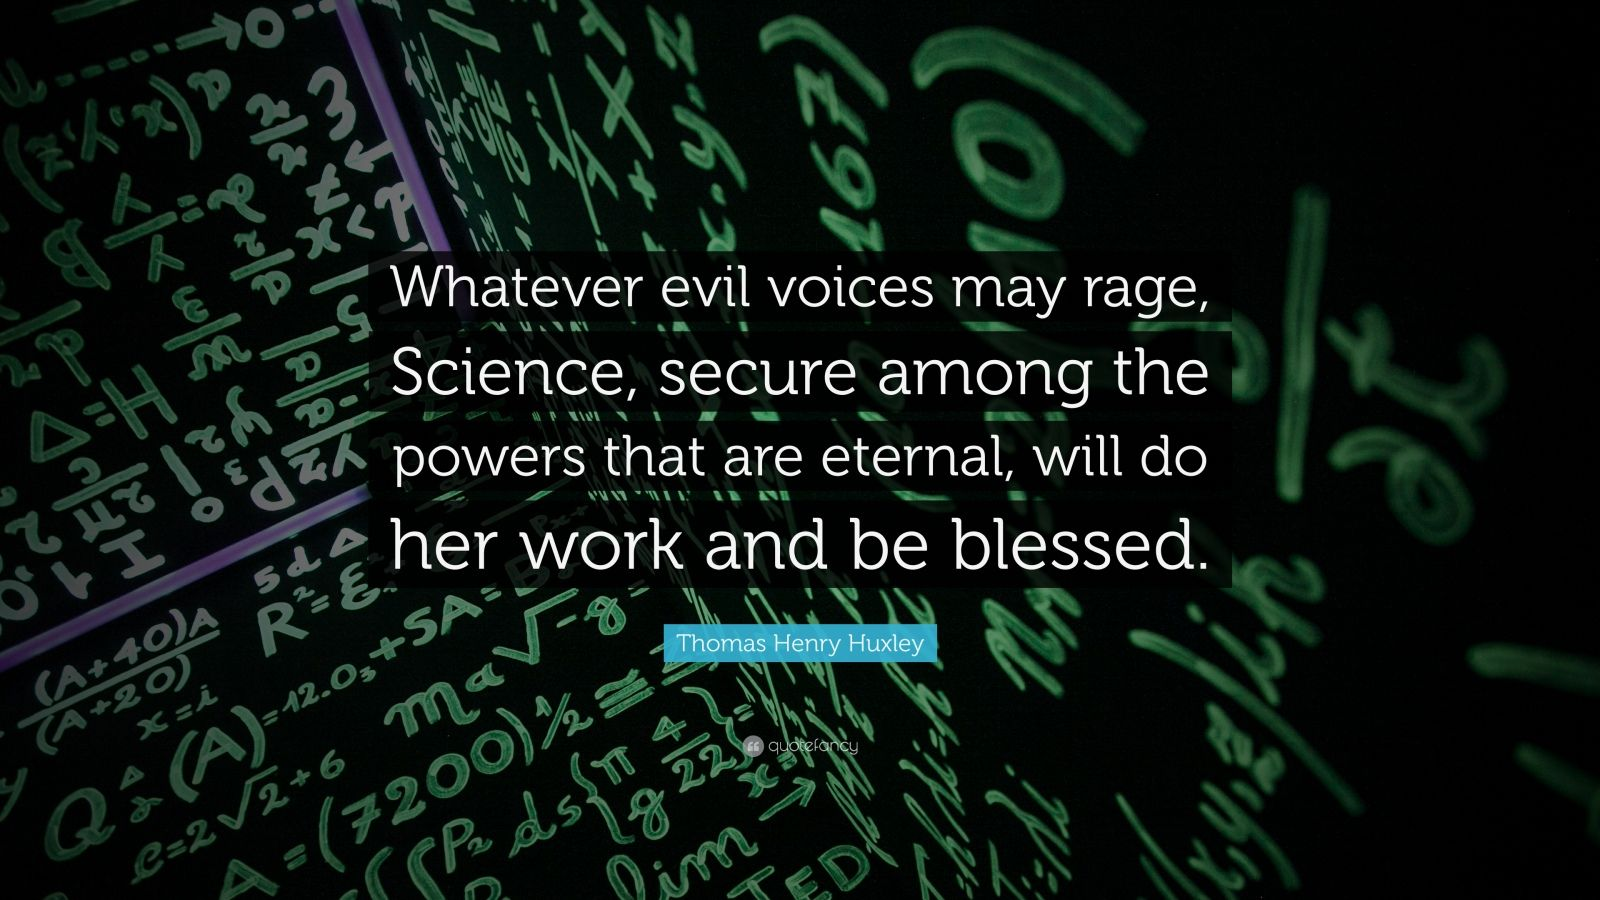 """Thomas Henry Huxley Quote: """"Whatever evil voices may rage, Science, secure among the powers that are eternal, will do her work and be blessed."""""""